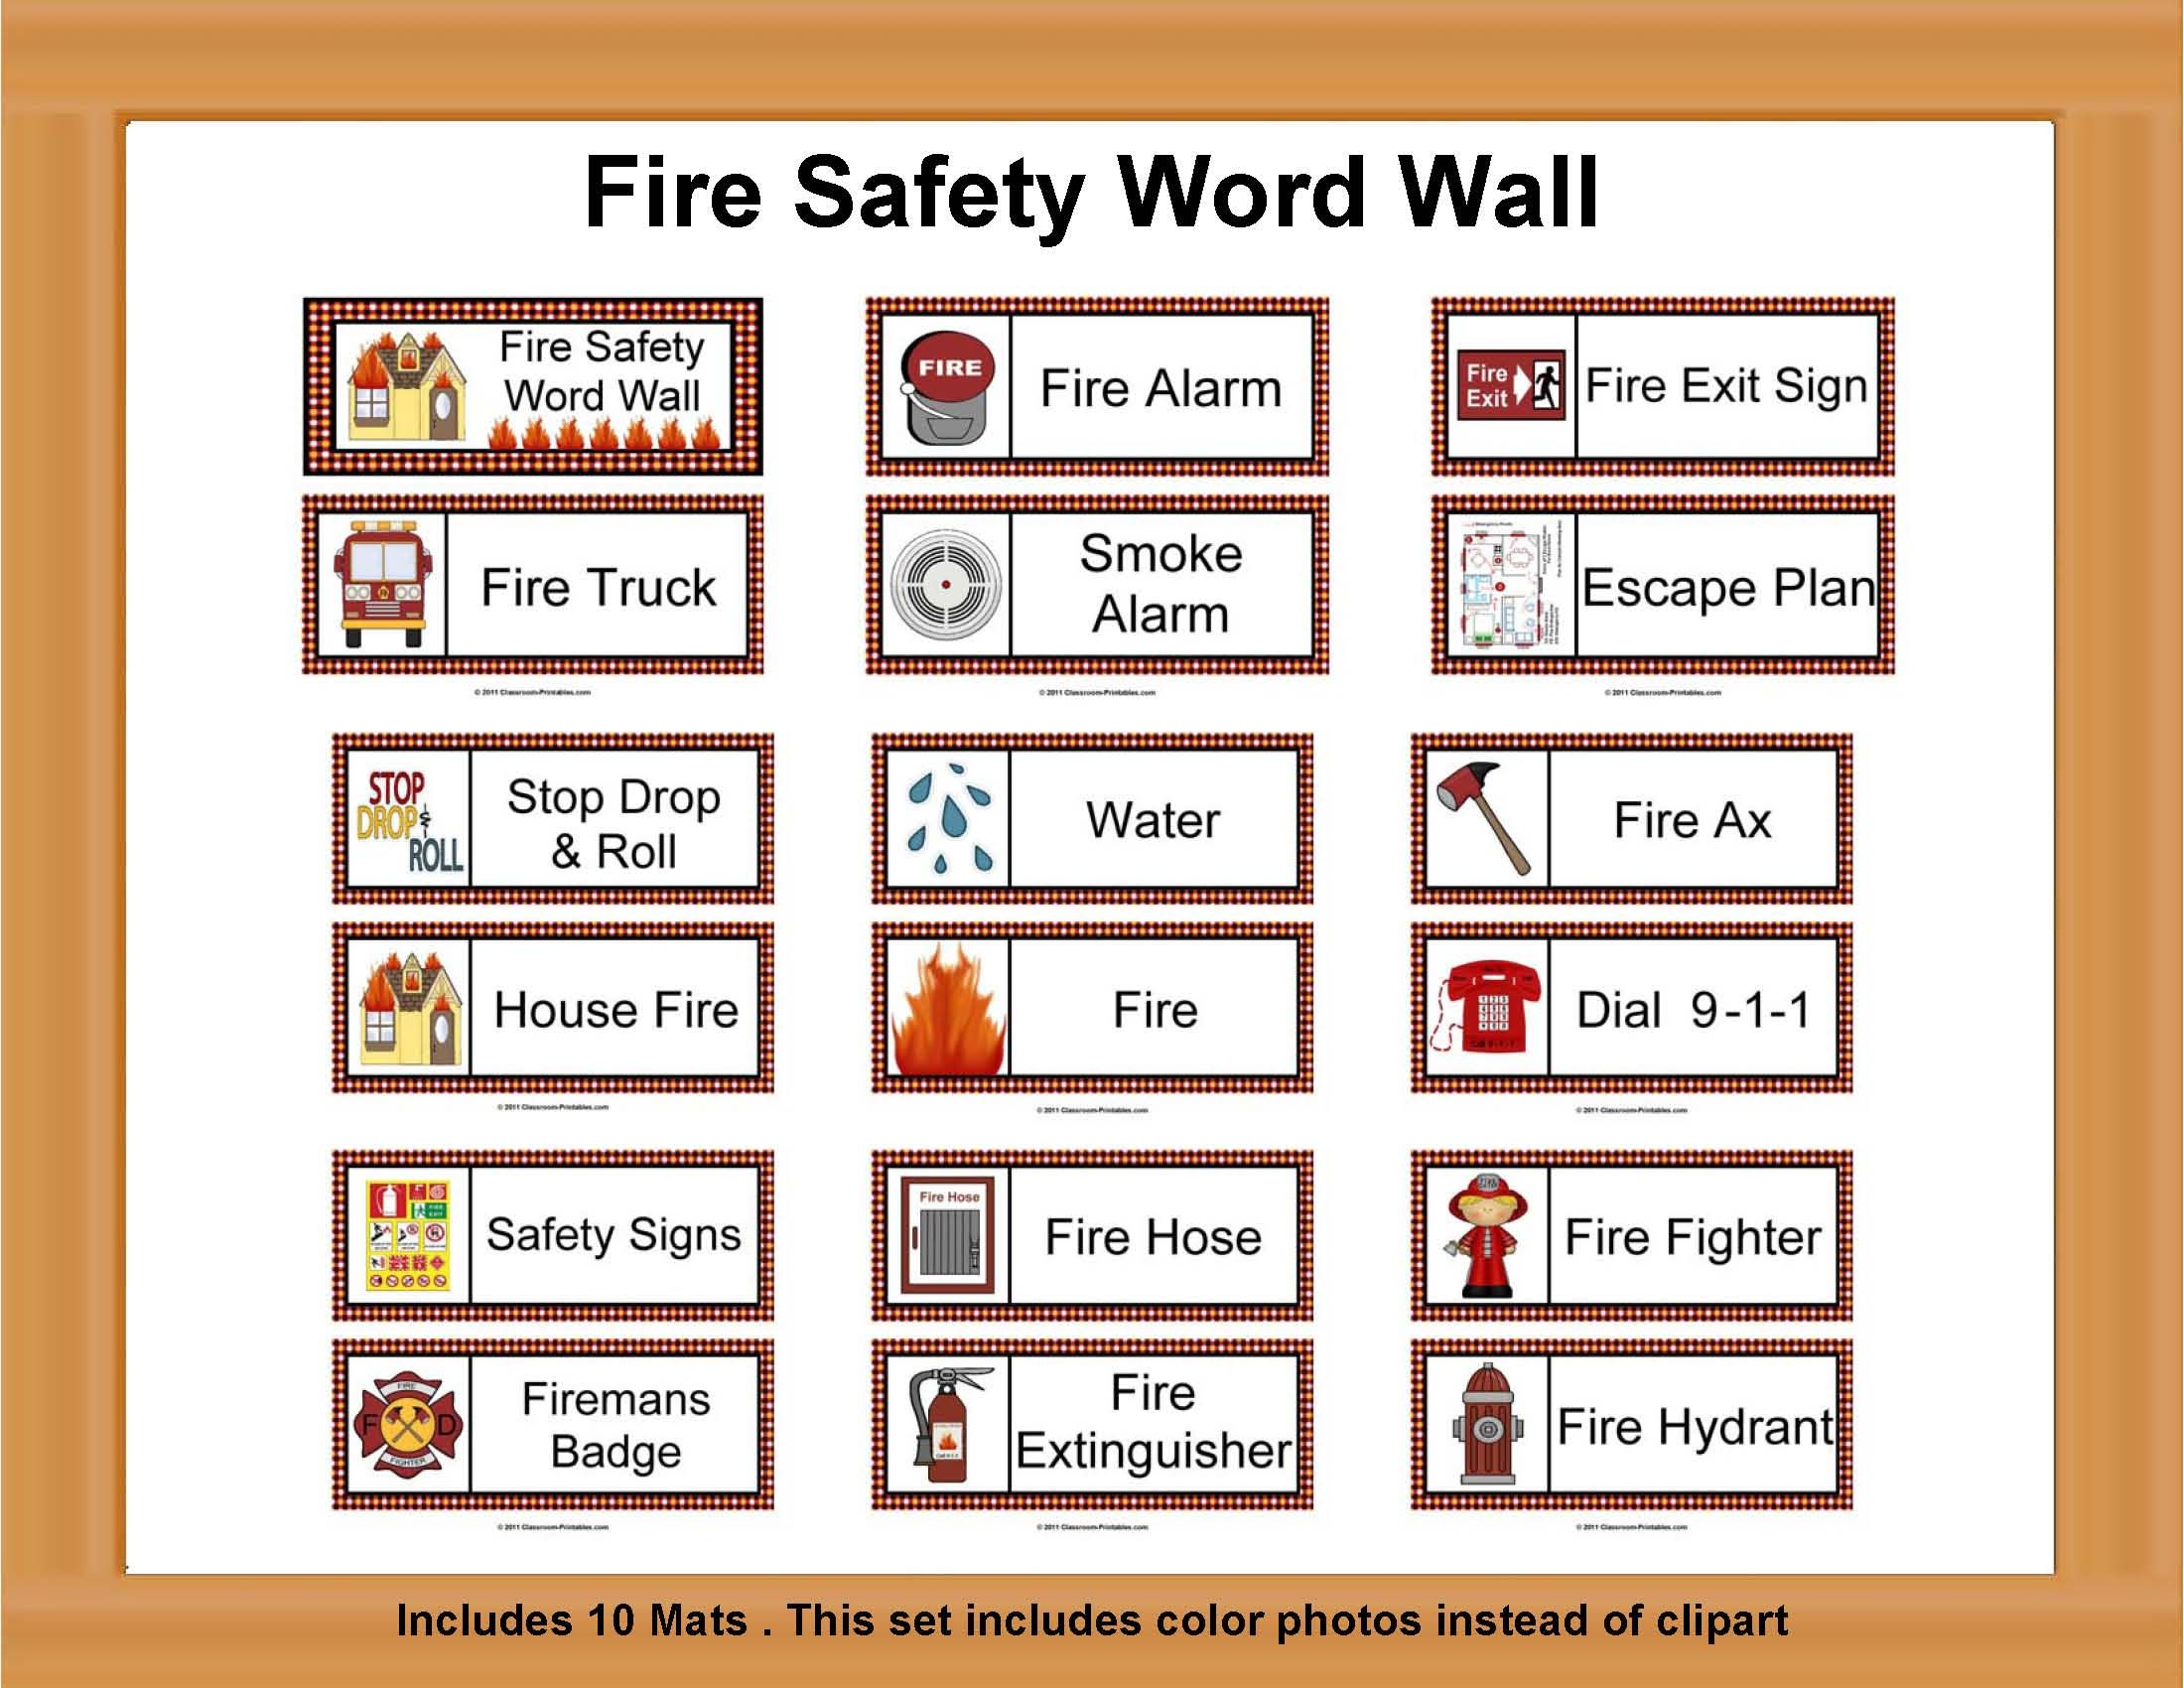 Fire Safety Word Wall